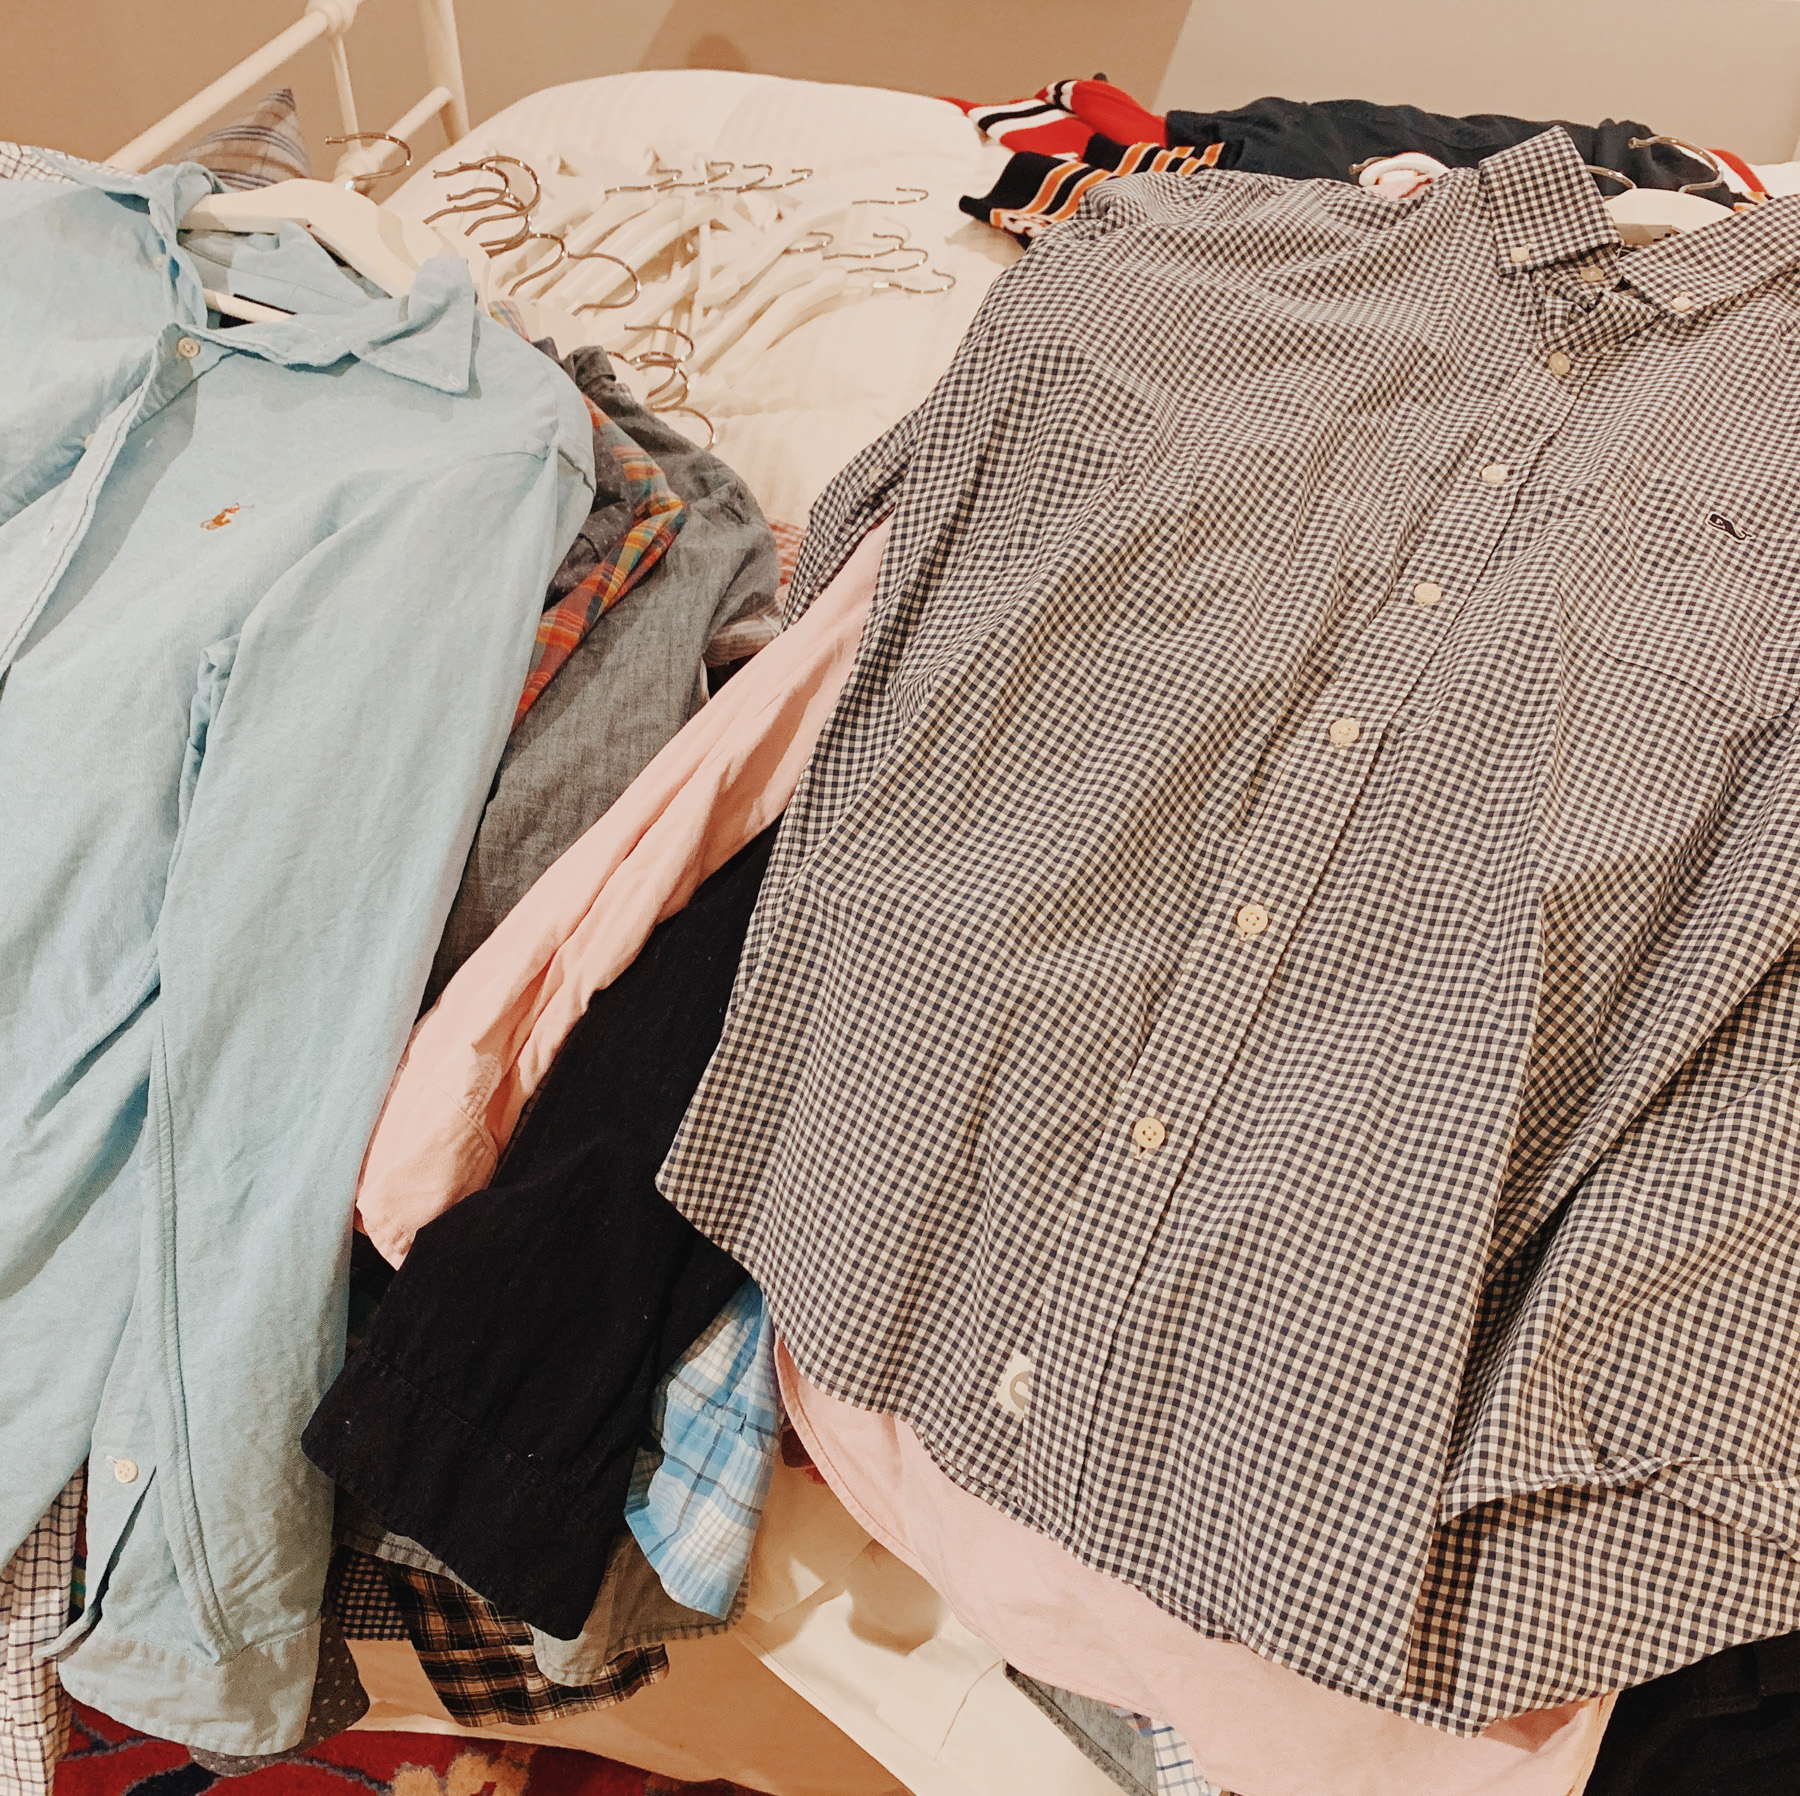 The contents of Mitch's closet.